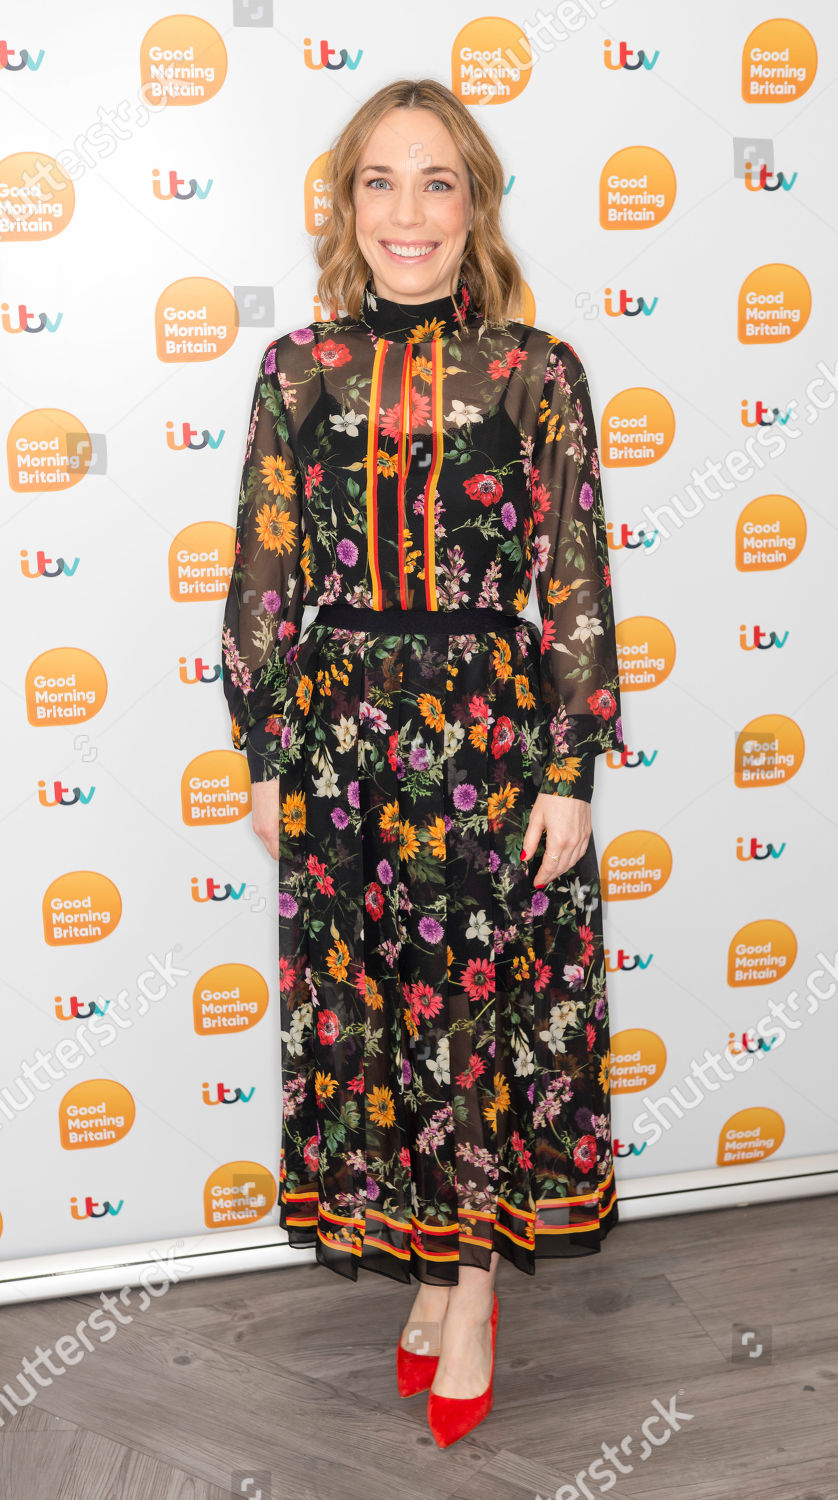 Laura Main on ITV Good Morning Britain  Source: Ken McKay/ITV/Shutterstock